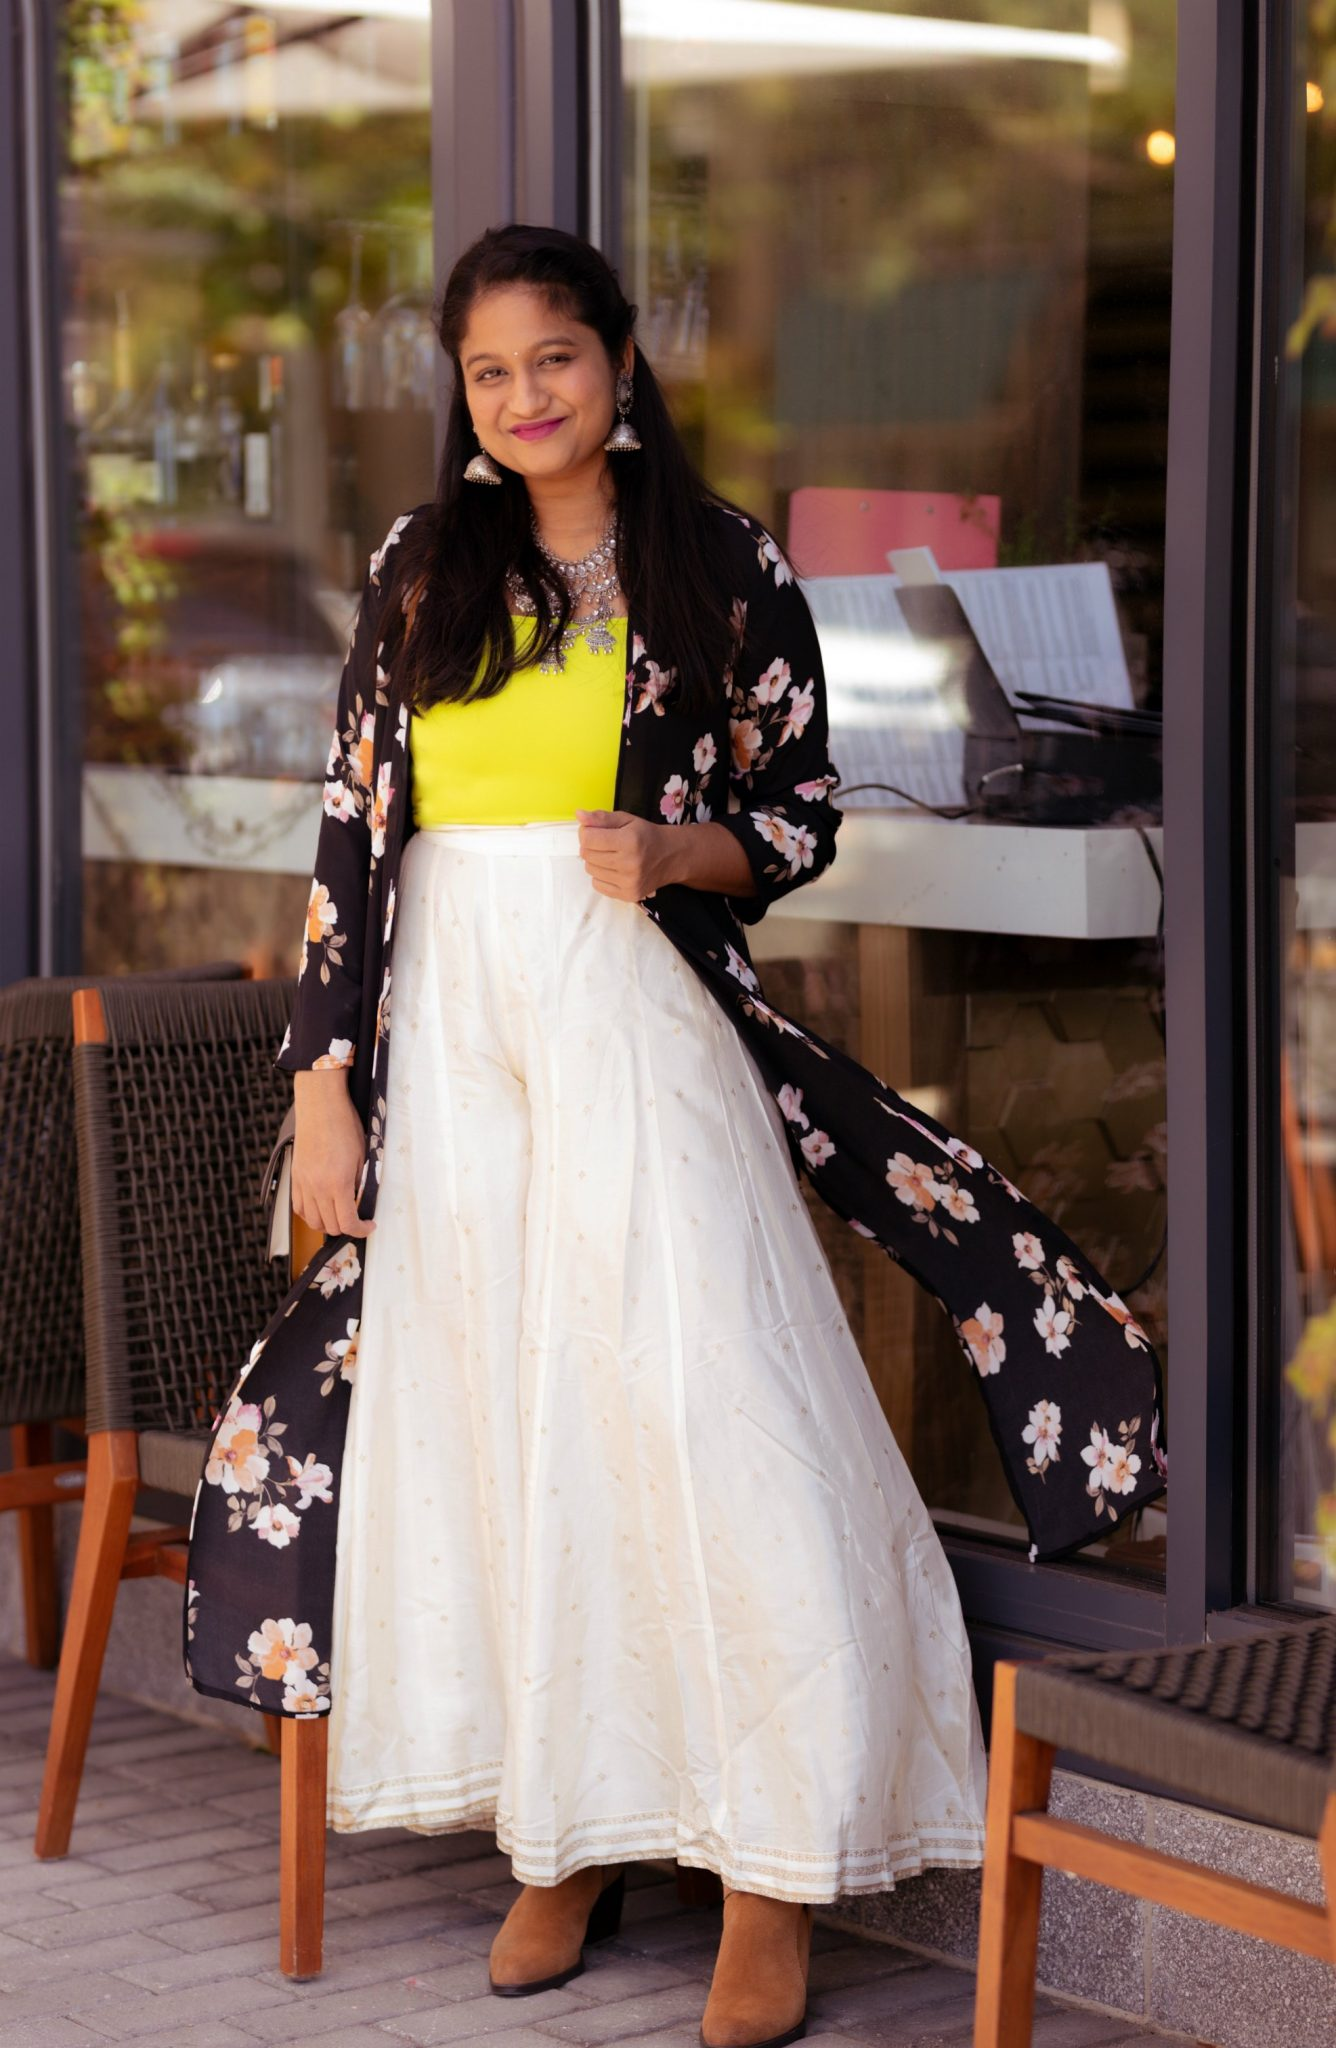 5-Cute-Diwali-Outfits-to-Wear-for-your-Diwali-Party-Neon-crop-top-silver-Afghani-statement-necklaceoff-white-palazzo-pantsfloral-kimono-Naturalizer-Fenya-Booties | Lightweight Jackets by popular Maryland modest fashion blog, Dreaming Loud: image of a woman wearing a black floral print chiffon kimono, neon yellow top, brown suede ankle boots, and white eyelet skirt.